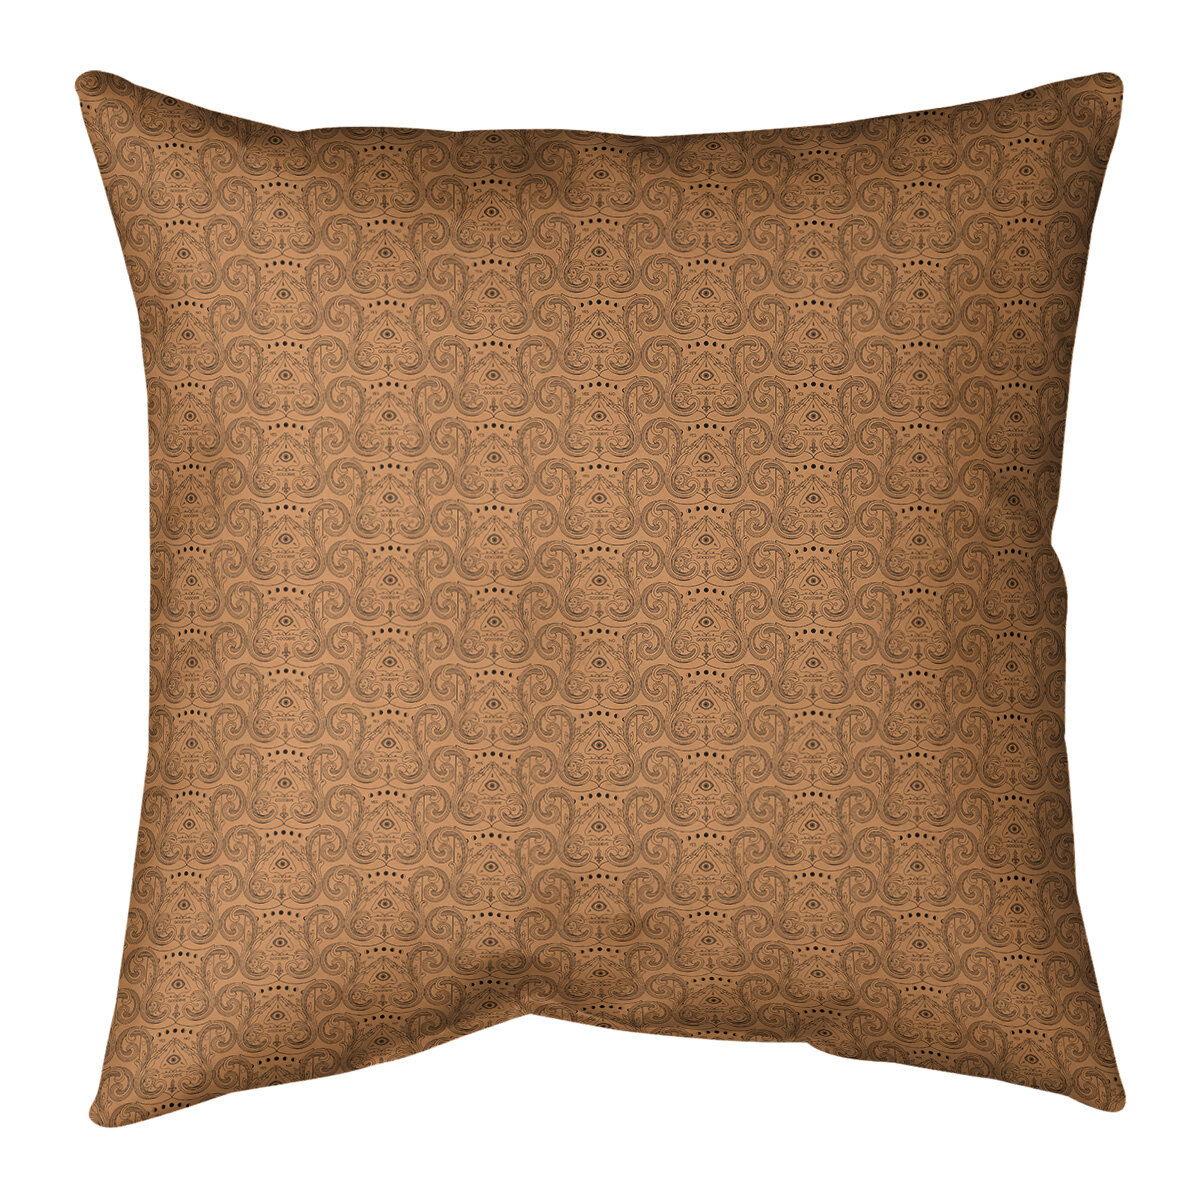 16 Square Leather Suede Throw Pillows You Ll Love In 2021 Wayfair